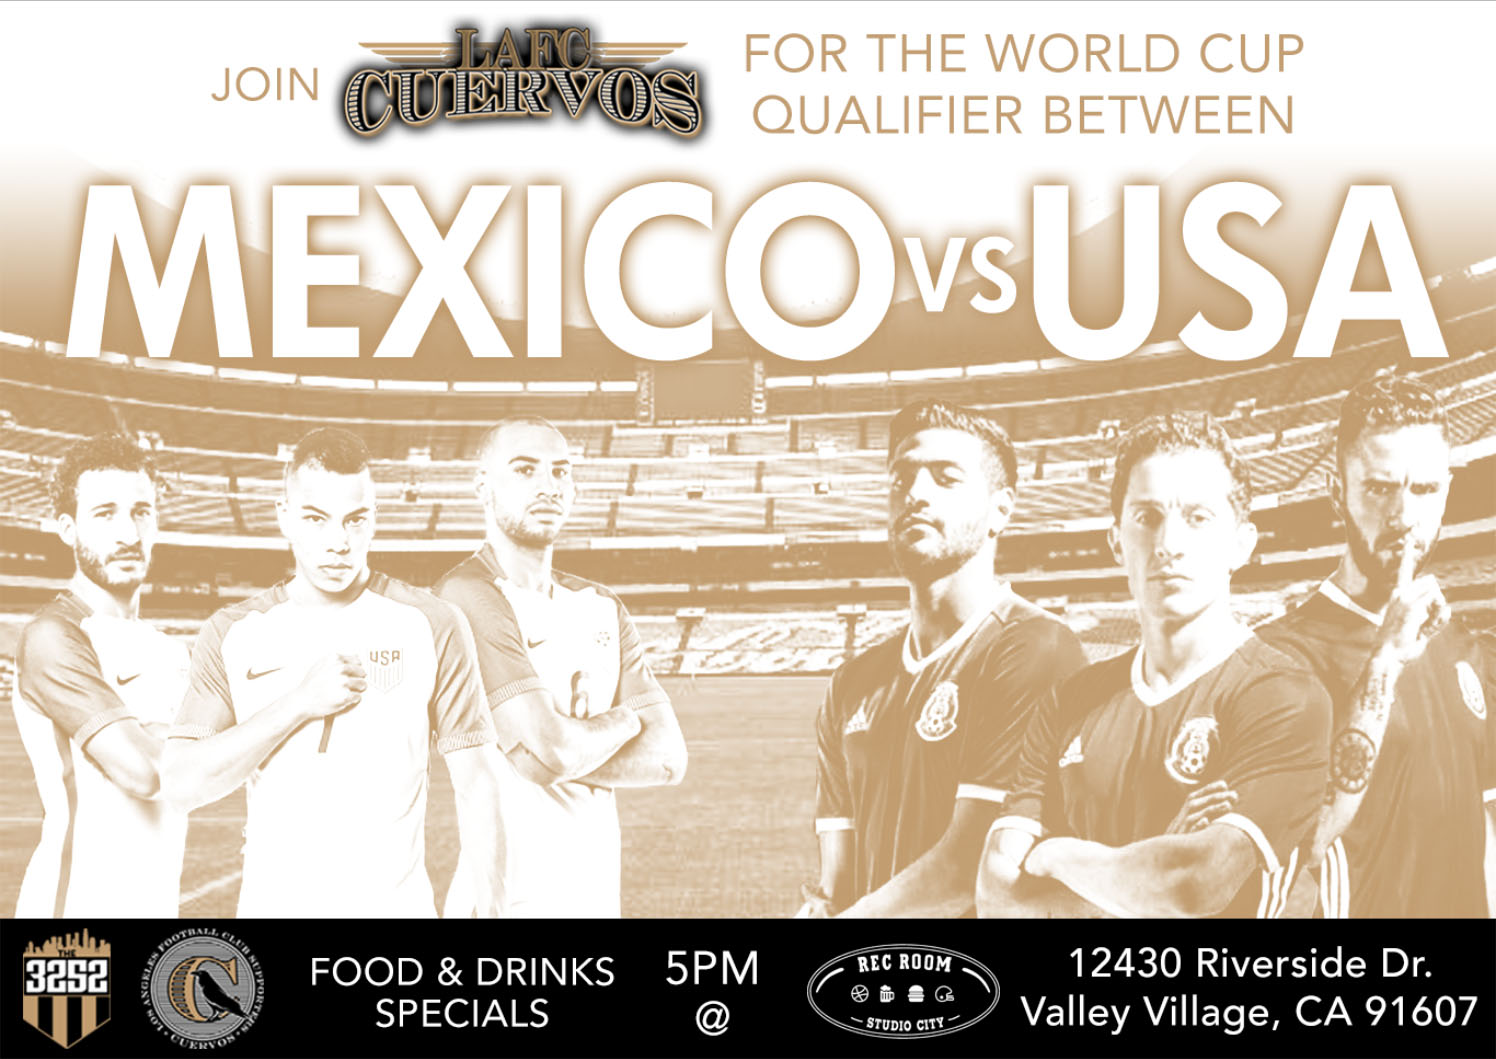 Mexico Vs USA   Join us this Sunday June 11th at 5 Pm at The Rec Room in Studio City. There will be food and drink specials. USA & Mexico fans welcome